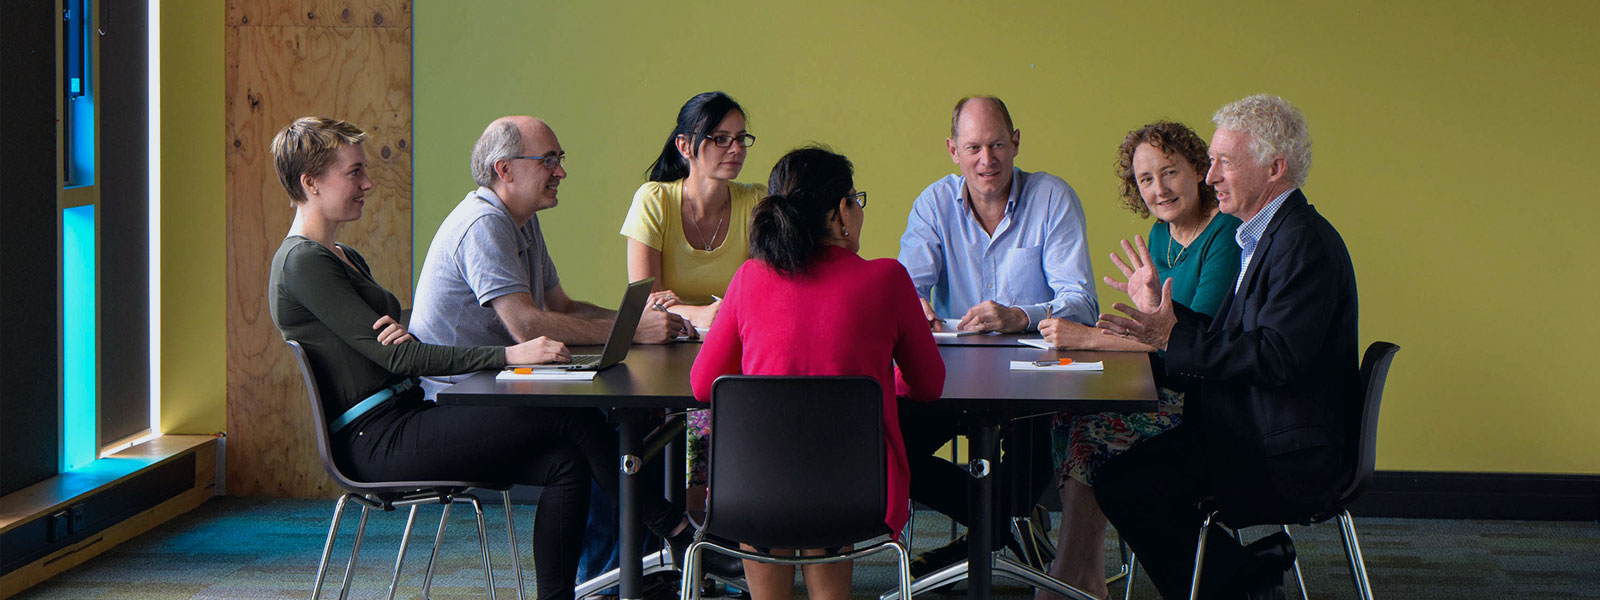 Accessit Library Team having a meeting